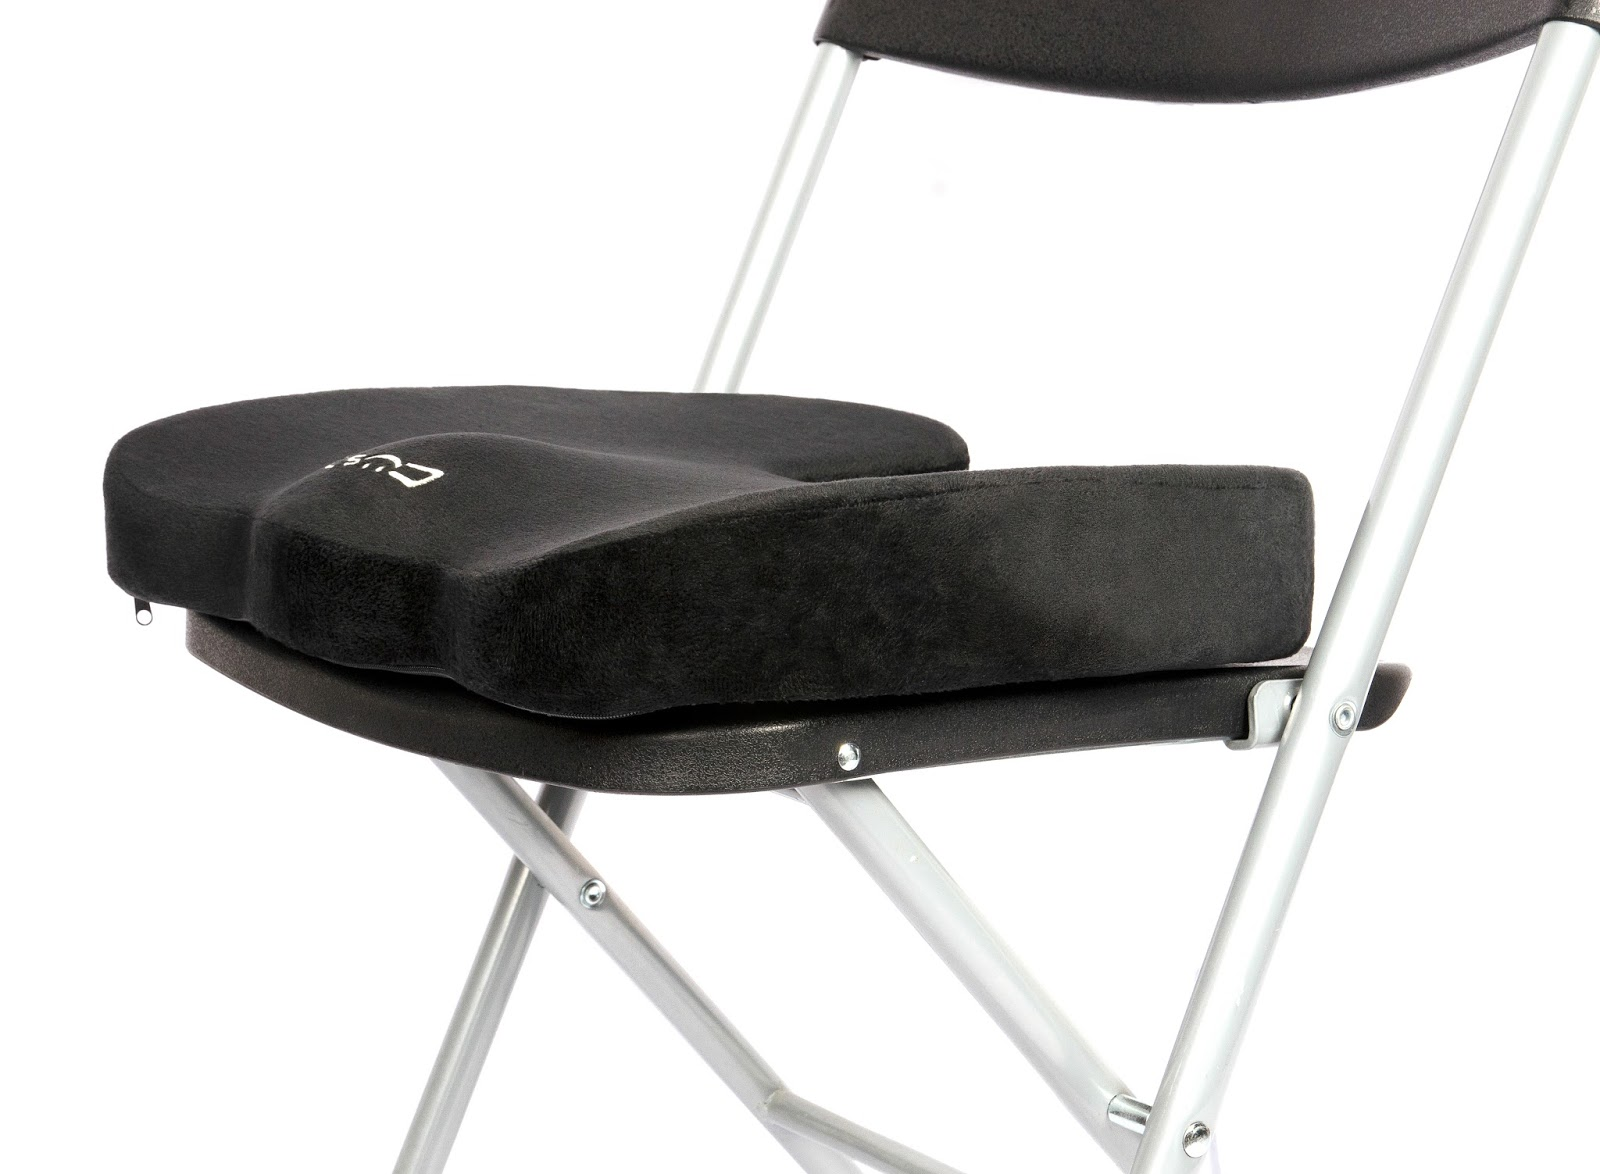 posture alignment chair used baby high chairs for sale cush comfort review by rose alexis cushion with